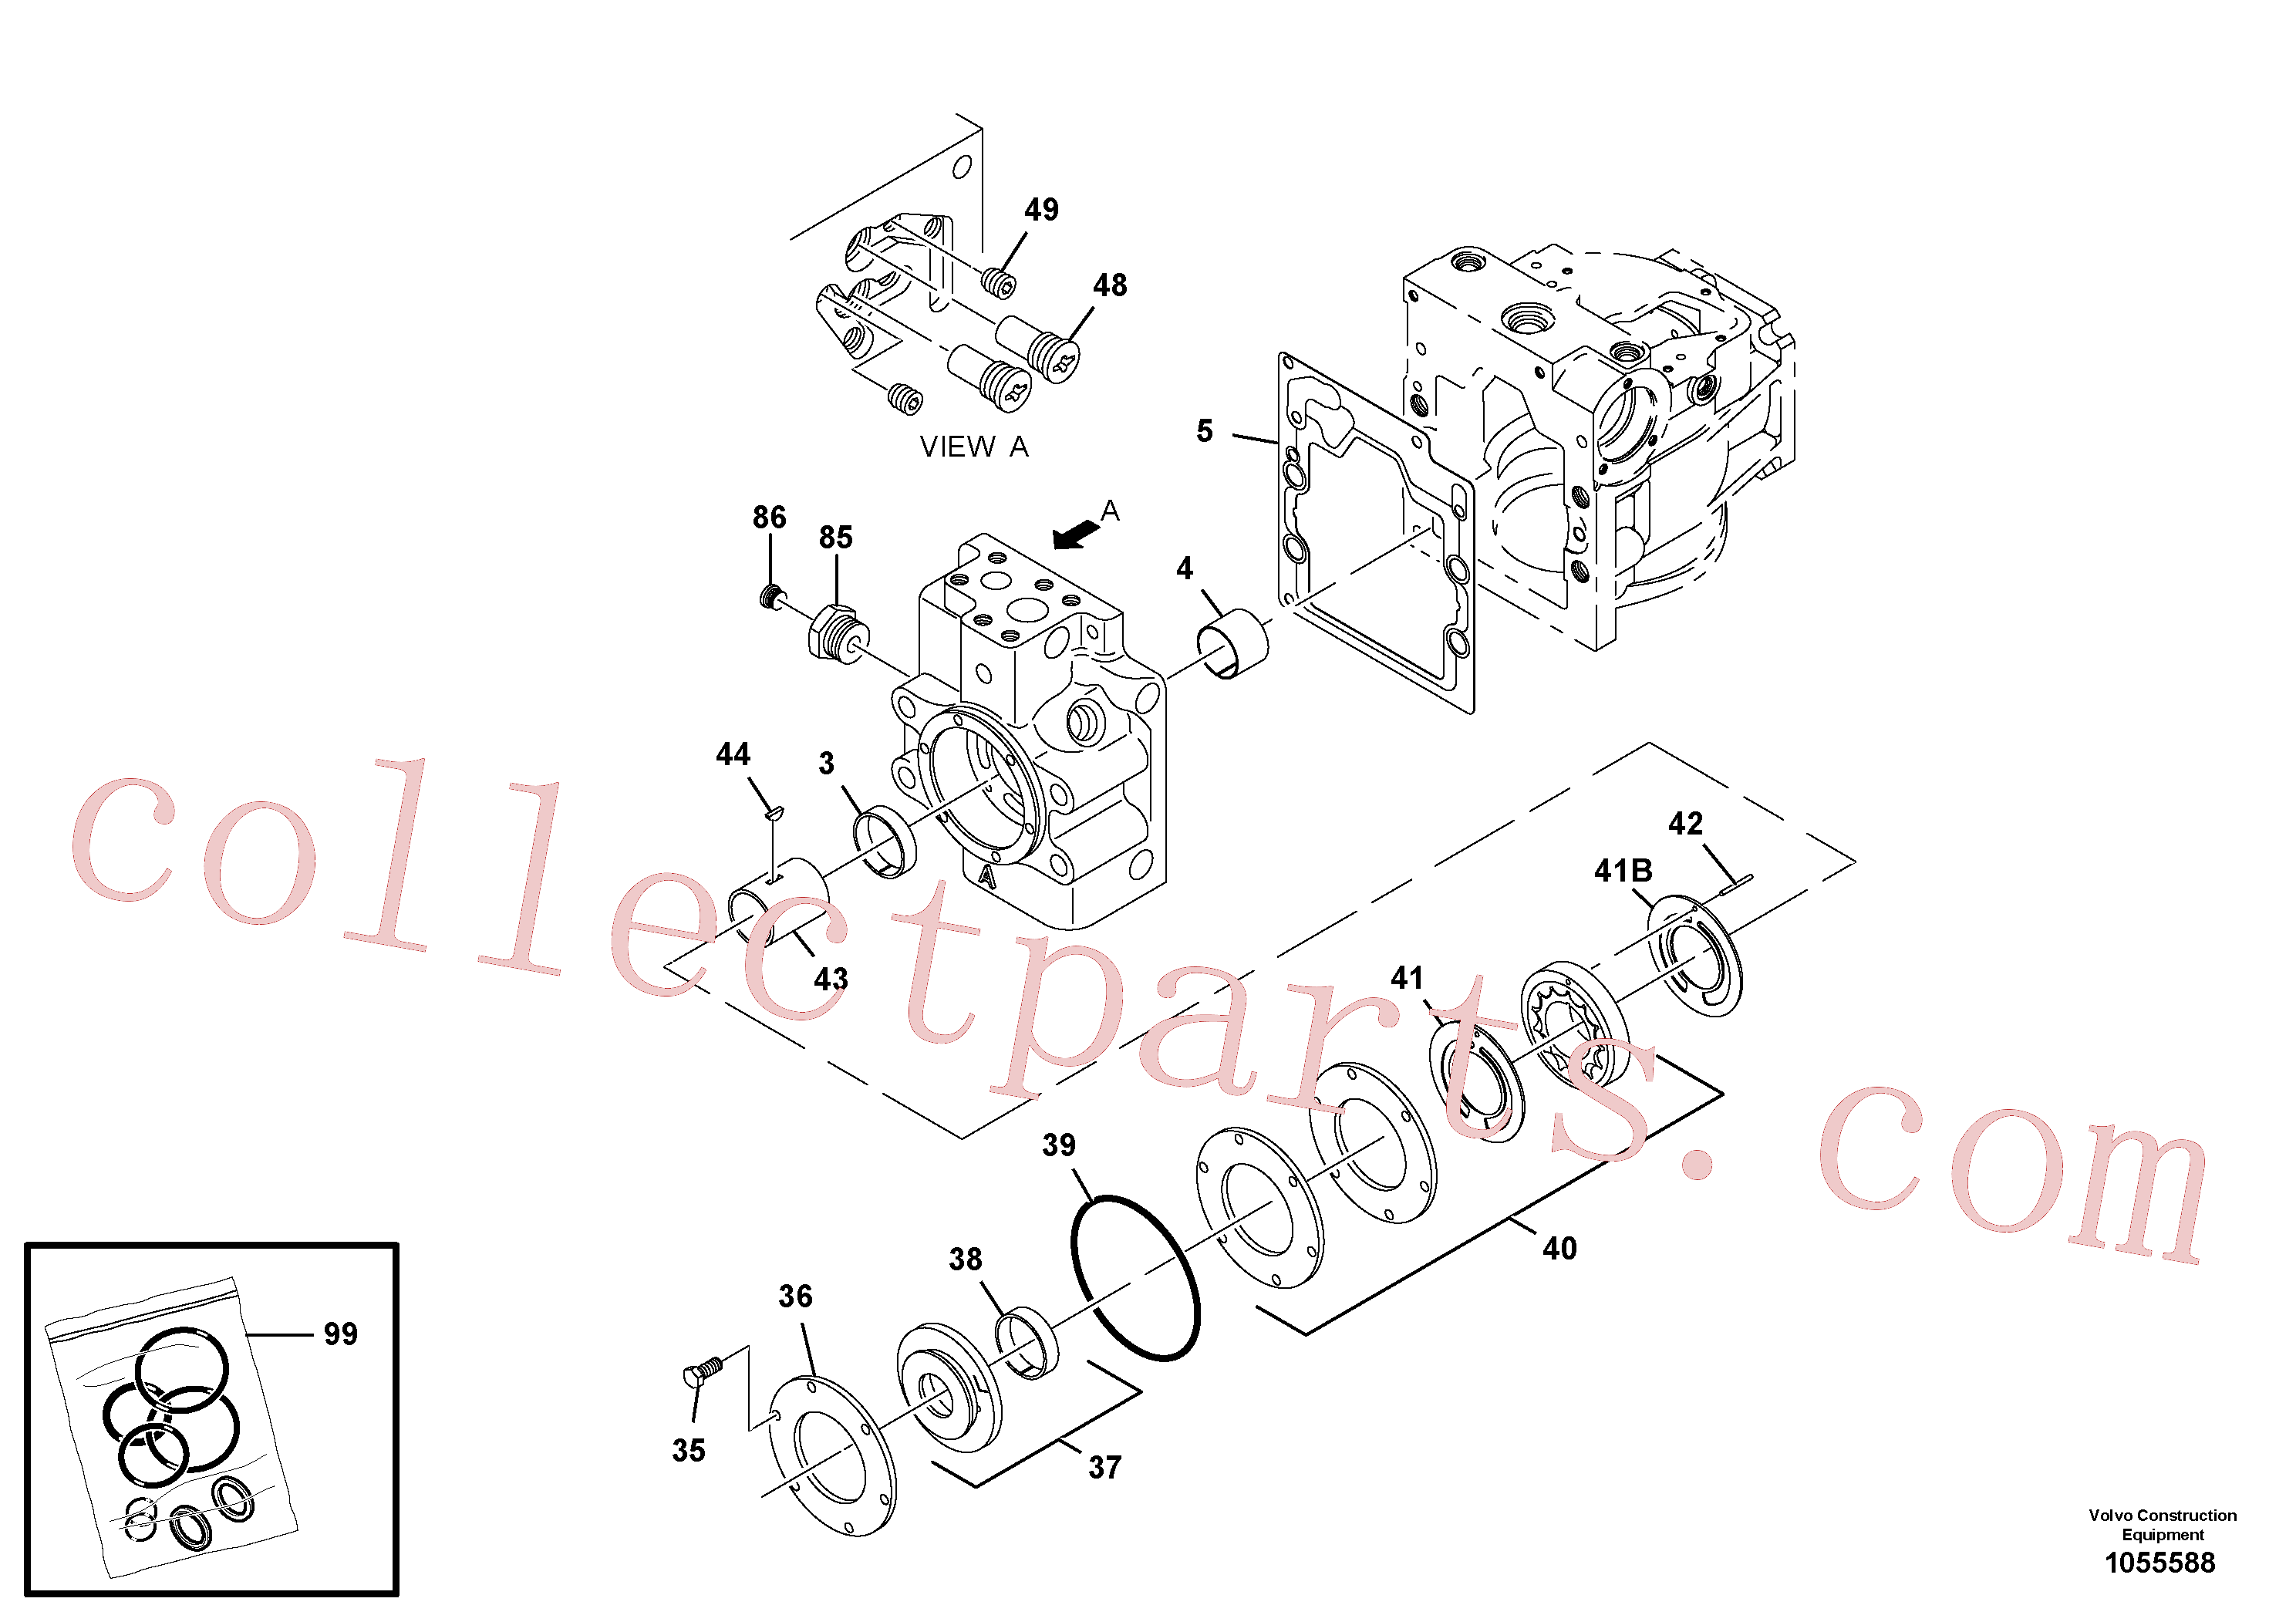 RM59933622 for Volvo Propulsion Pump(1055588 assembly)